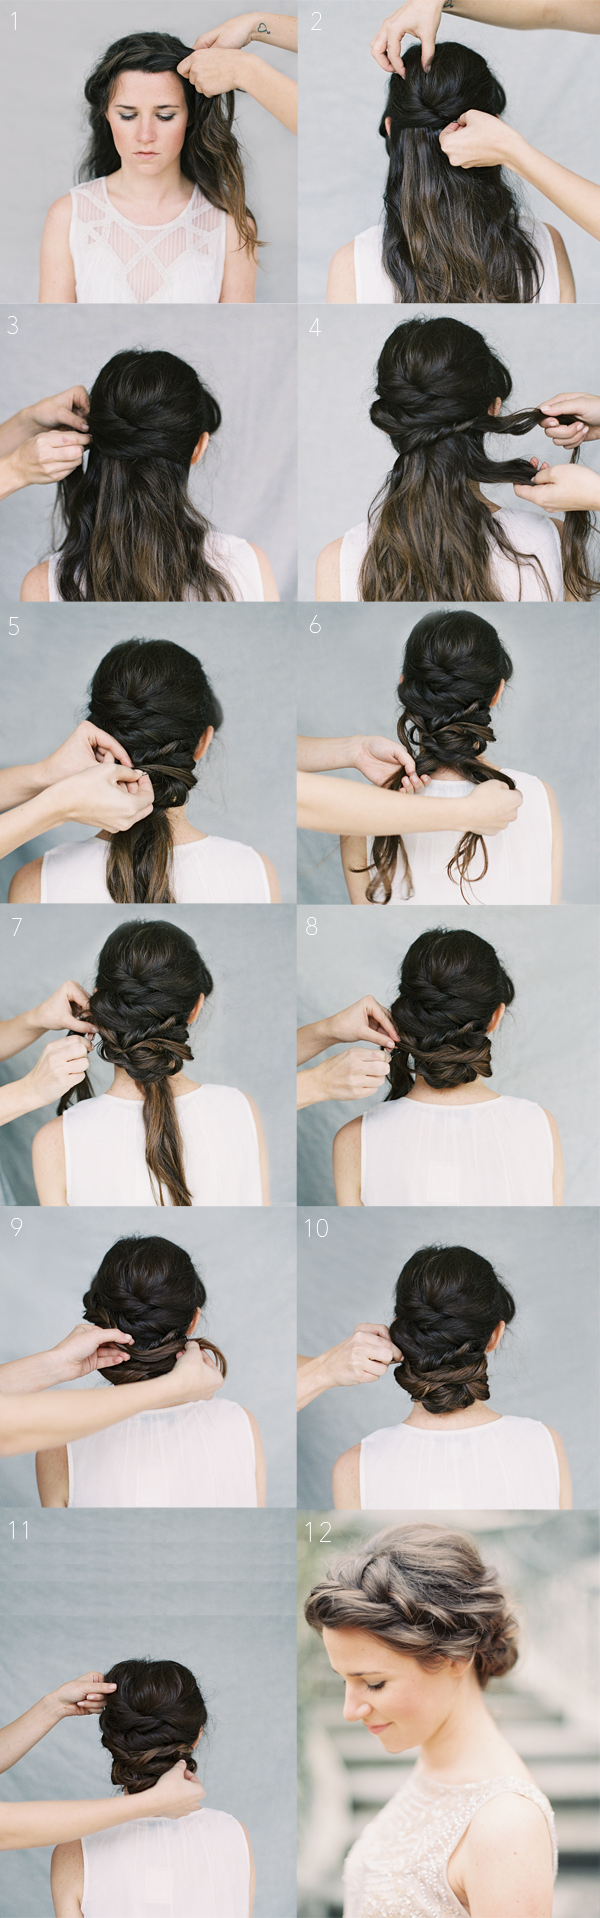 Hairstyles for Medium Hair Braid Tutorial